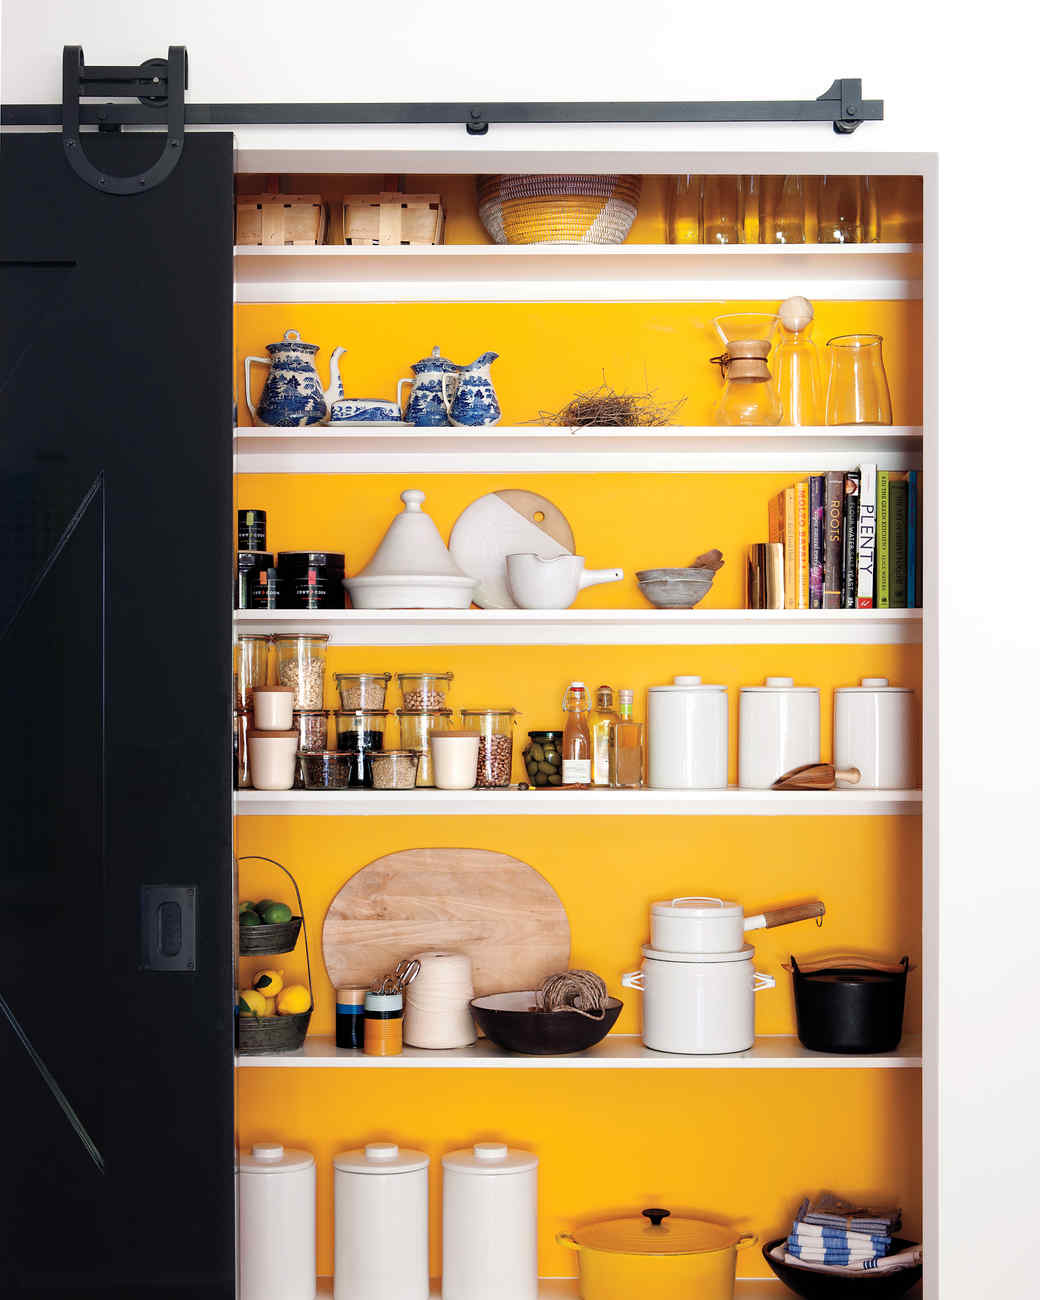 15 Kitchen Pantry Ideas With Form And Function: 15 Game-Changing Kitchen Remodel Ideas